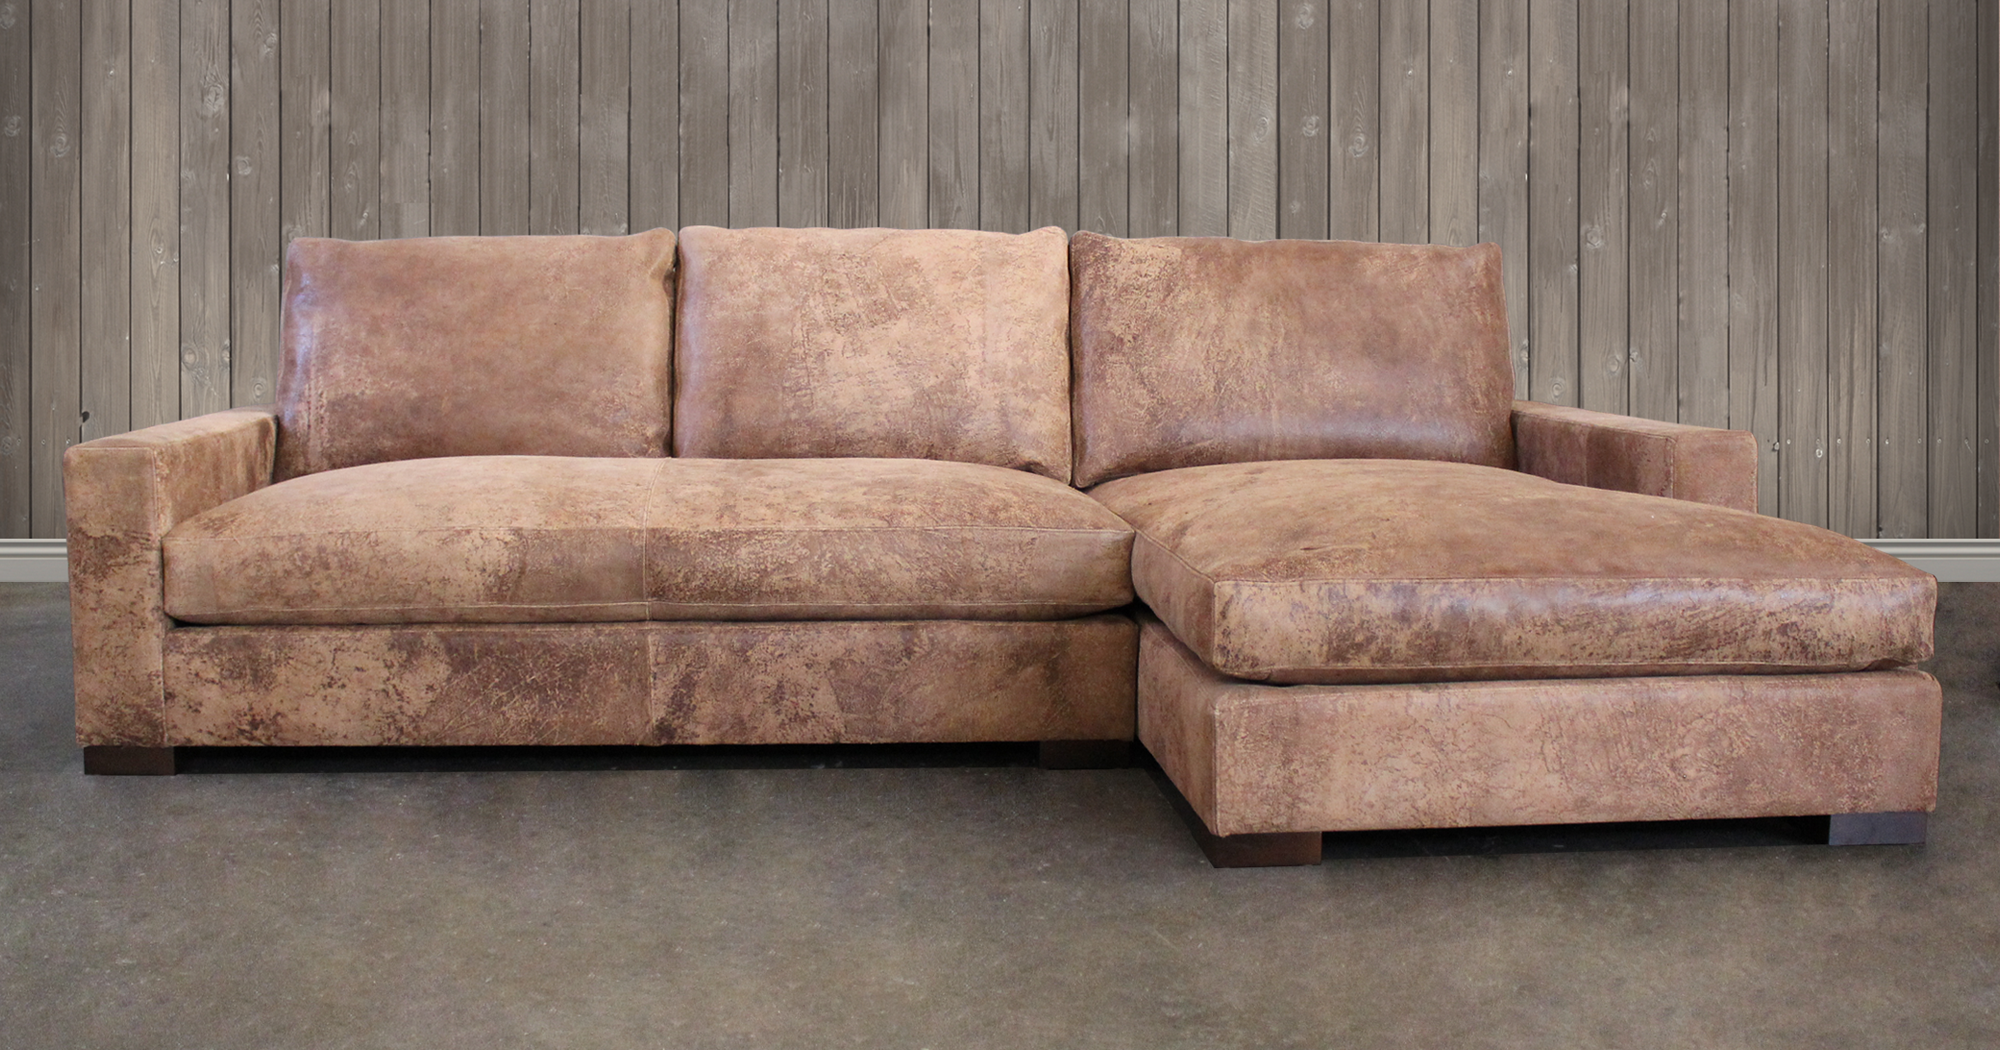 American Made Leather Furniture, Leather Sofas, Leather Chairs ...